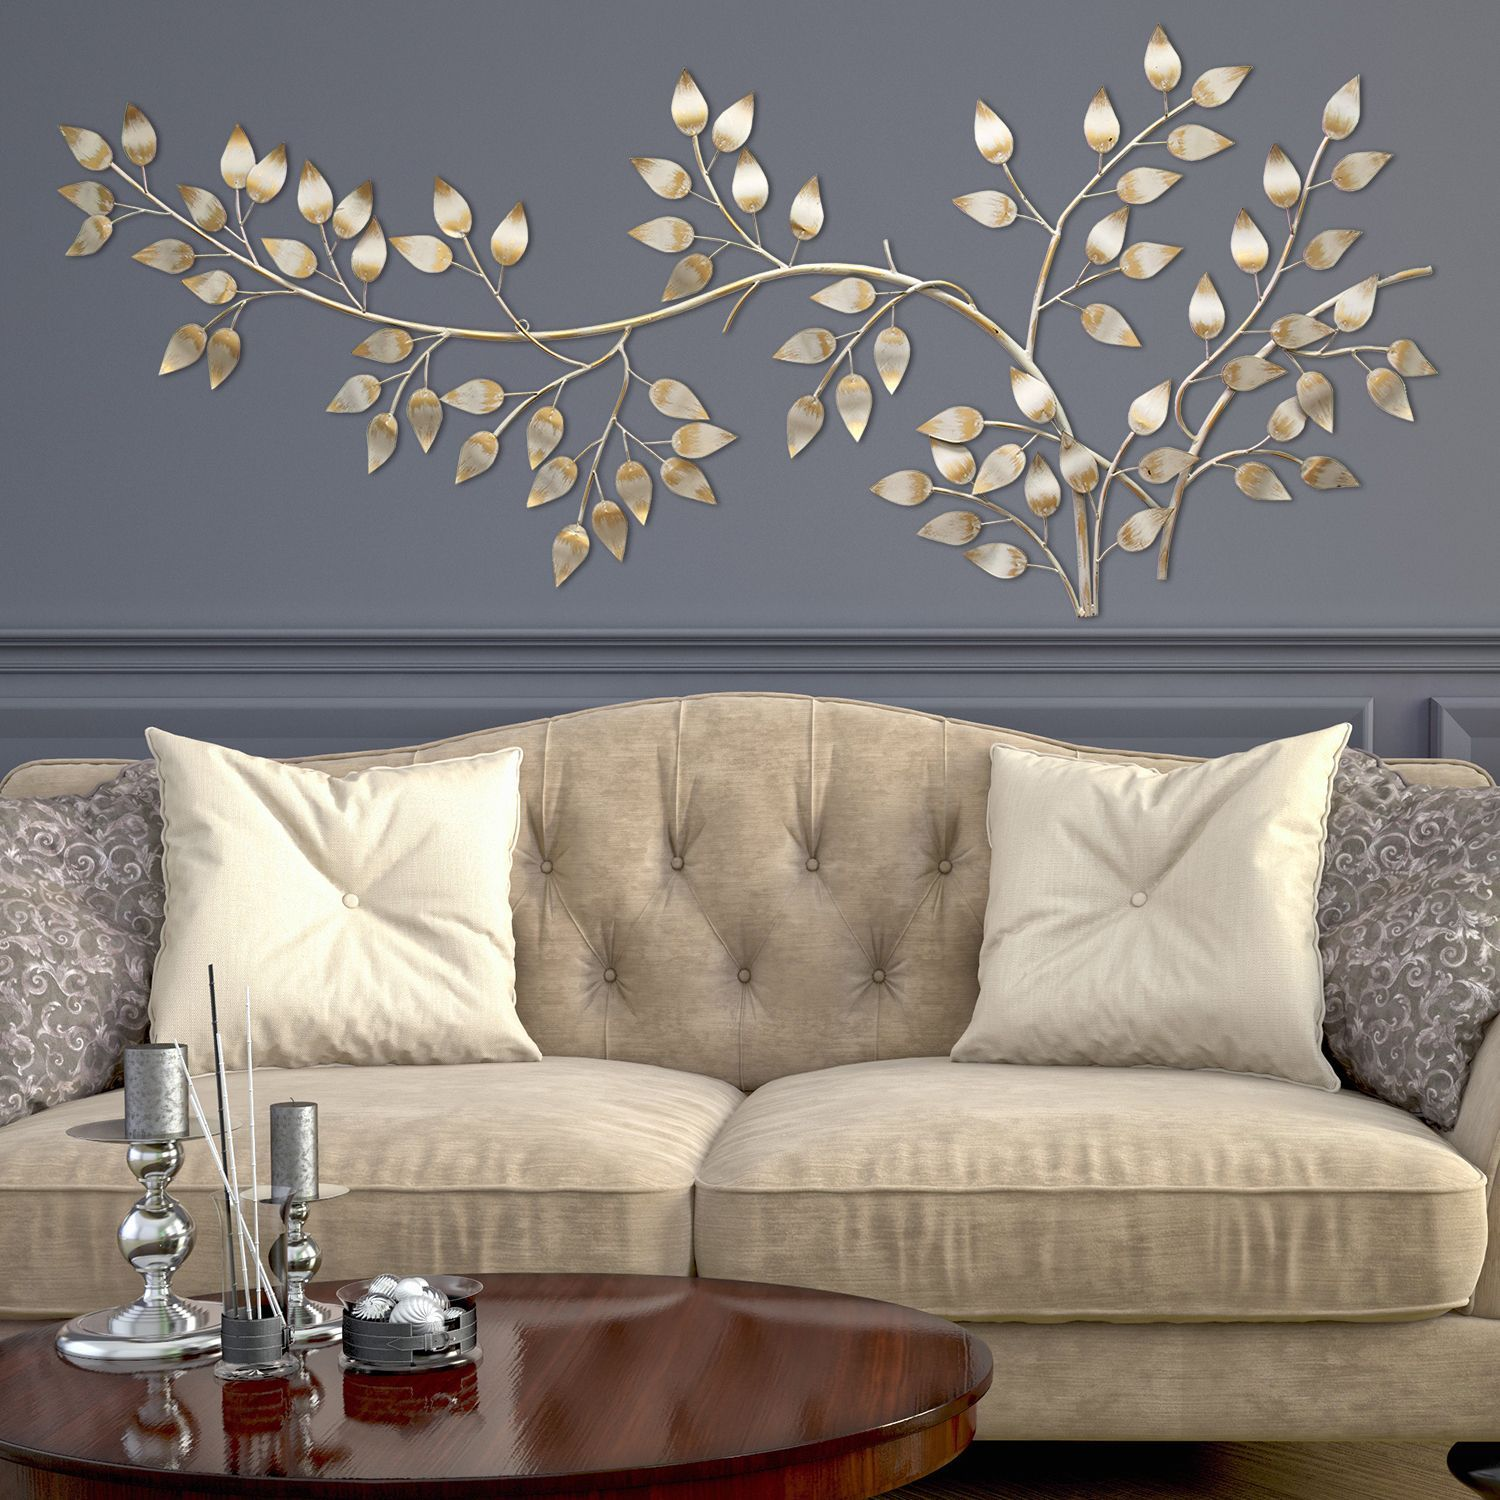 Gold Metal Wall Decor stratton home decor brushed gold flowing leaves wall decor (60.00